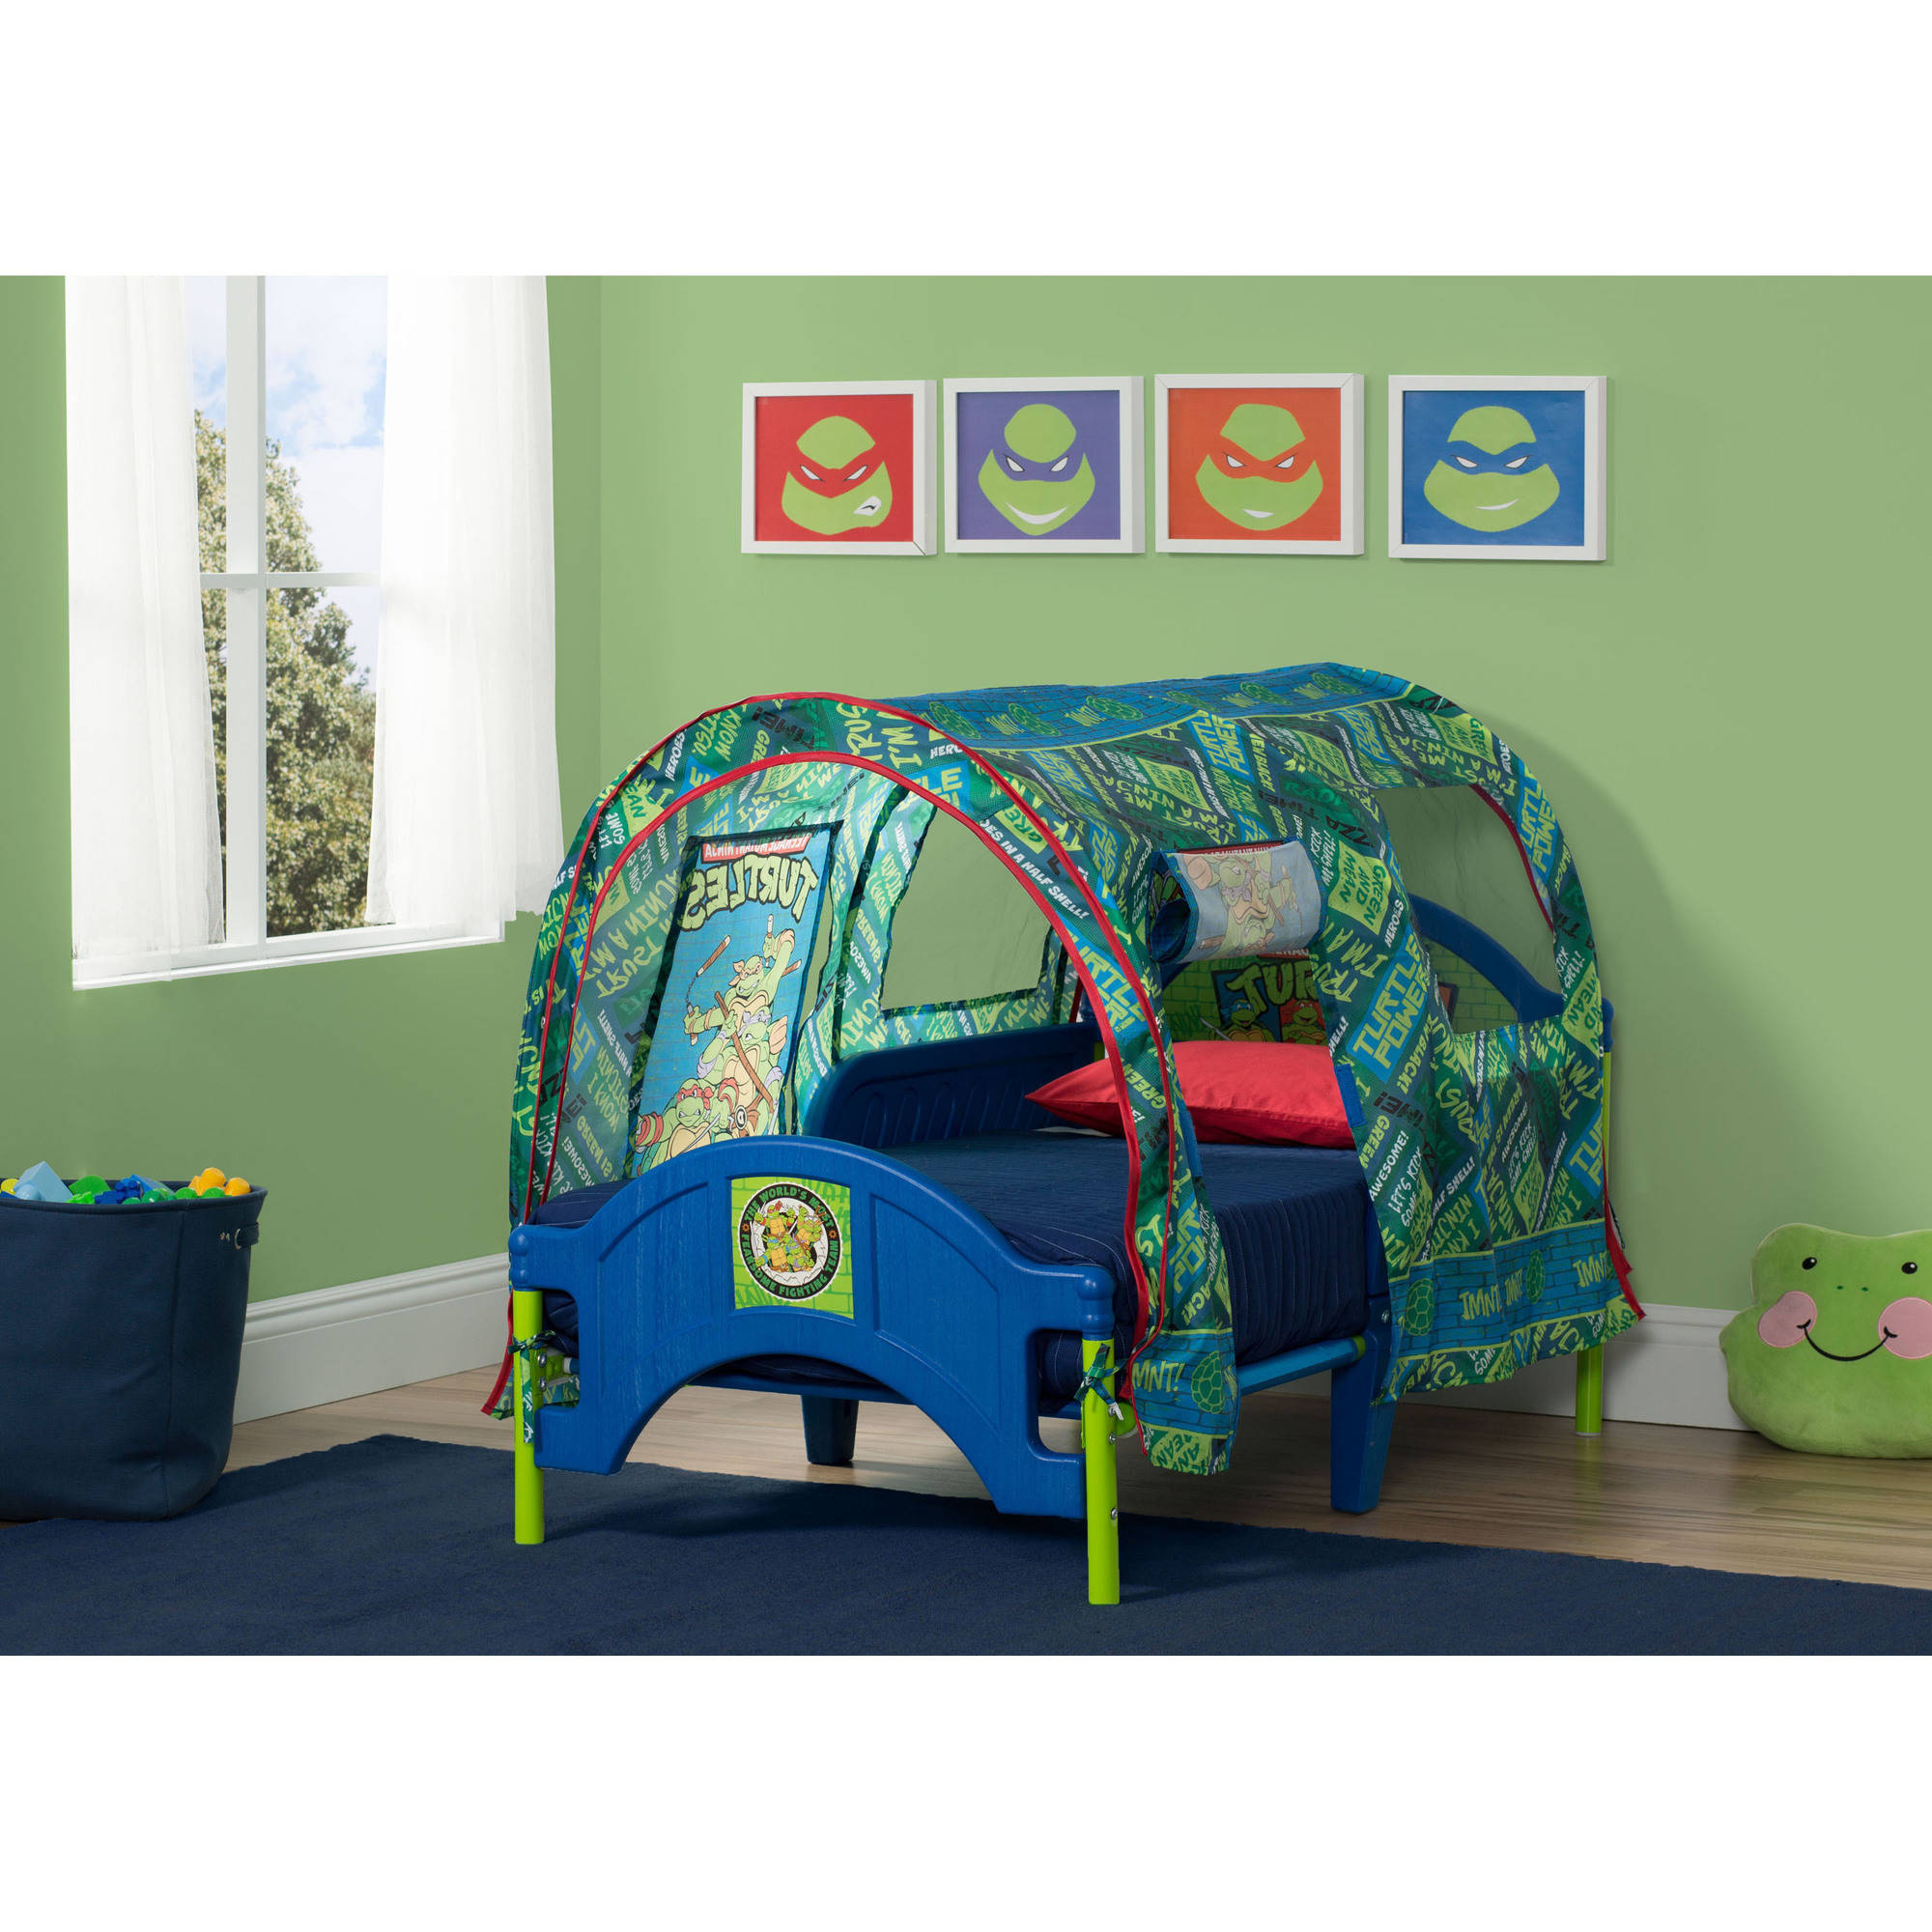 sc 1 st  Walmart & Teenage Mutant Ninja Turtles Toddler Bed with Tent - Walmart.com